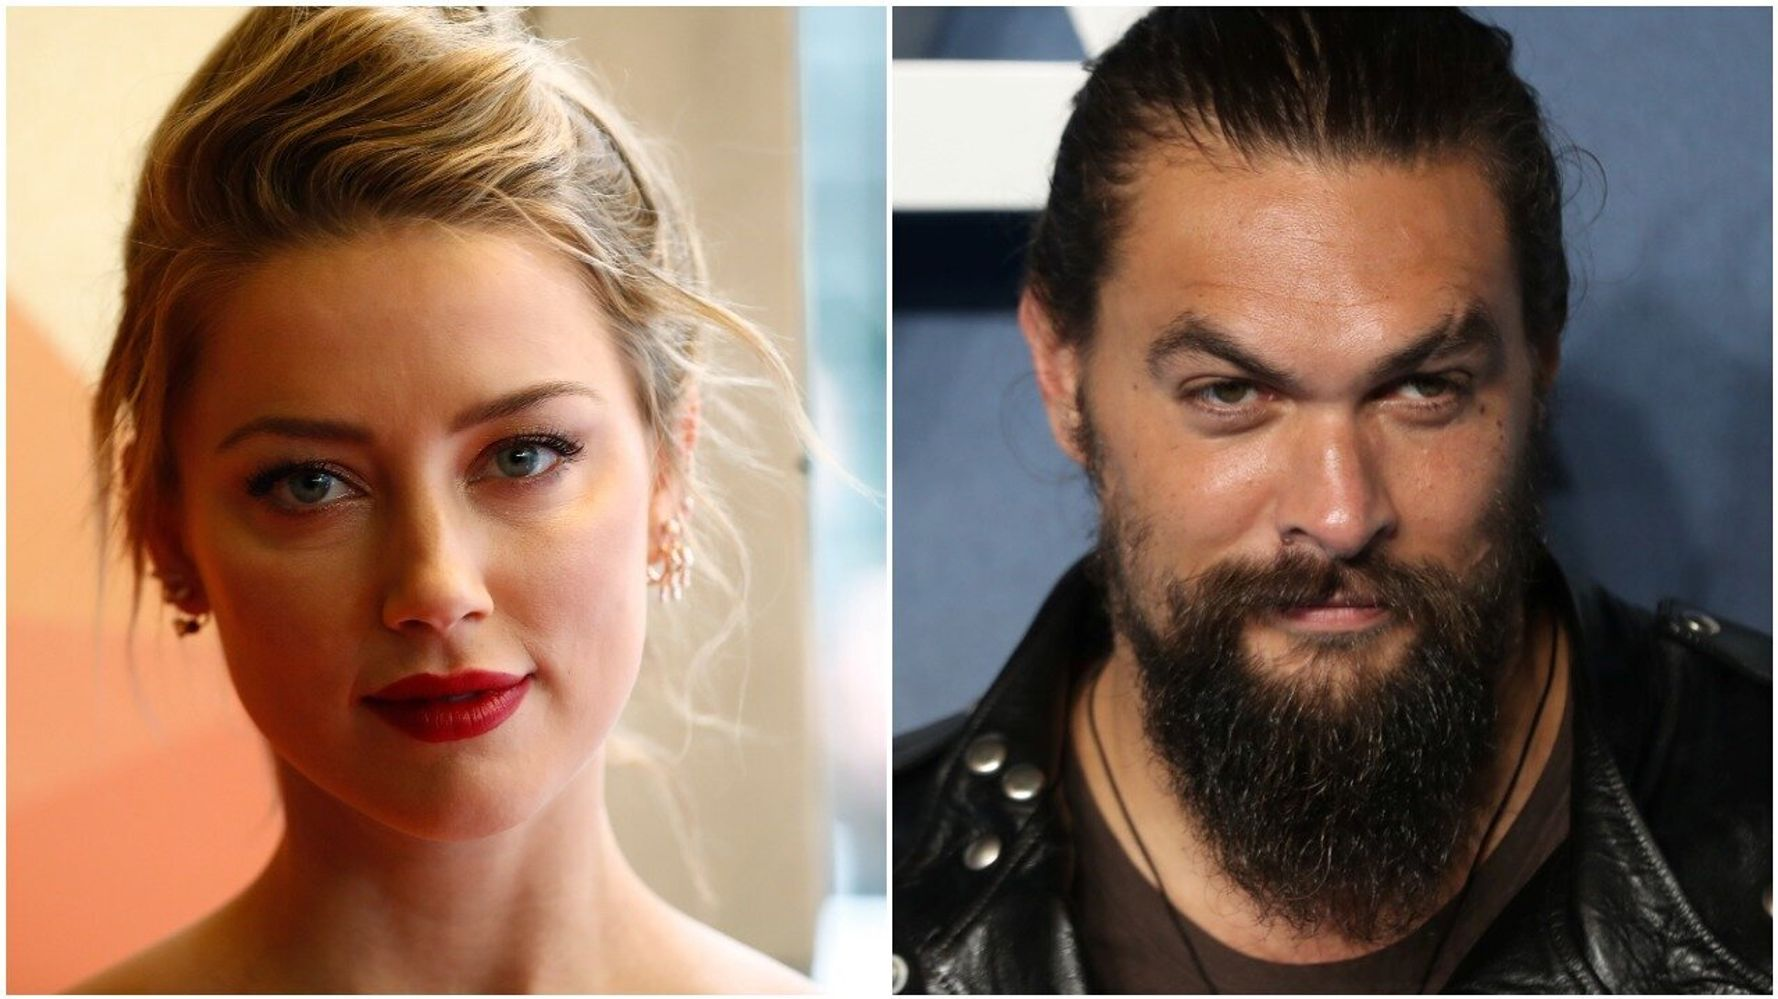 Westlake Legal Group 5dae4df52100006b21ad3789 Amber Heard Bashes Instagram Nudity Guidelines With Buff Photo Of Jason Momoa